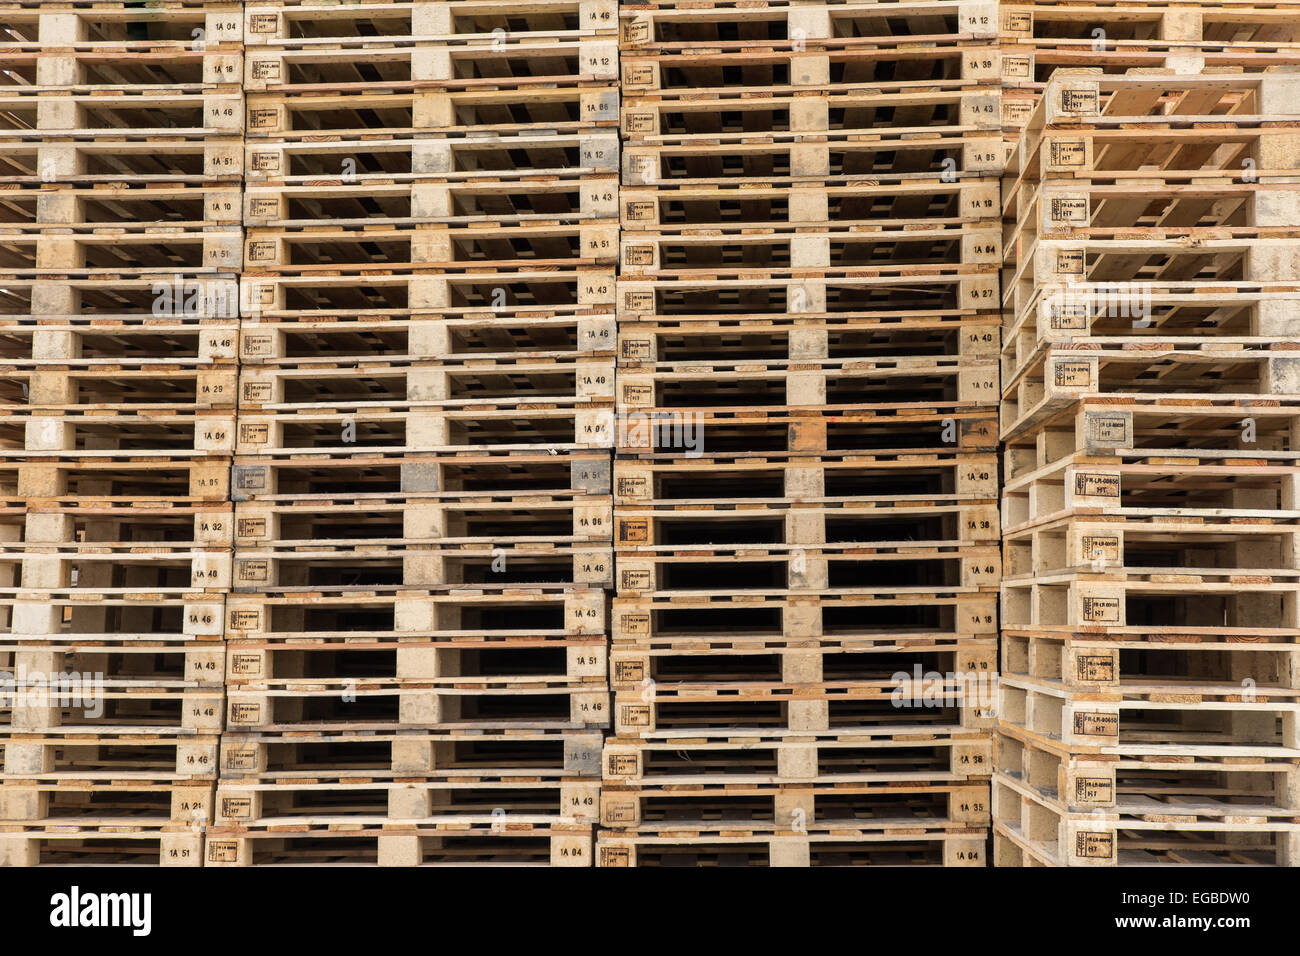 Pallets Stacked Stock Photos & Pallets Stacked Stock Images - Alamy